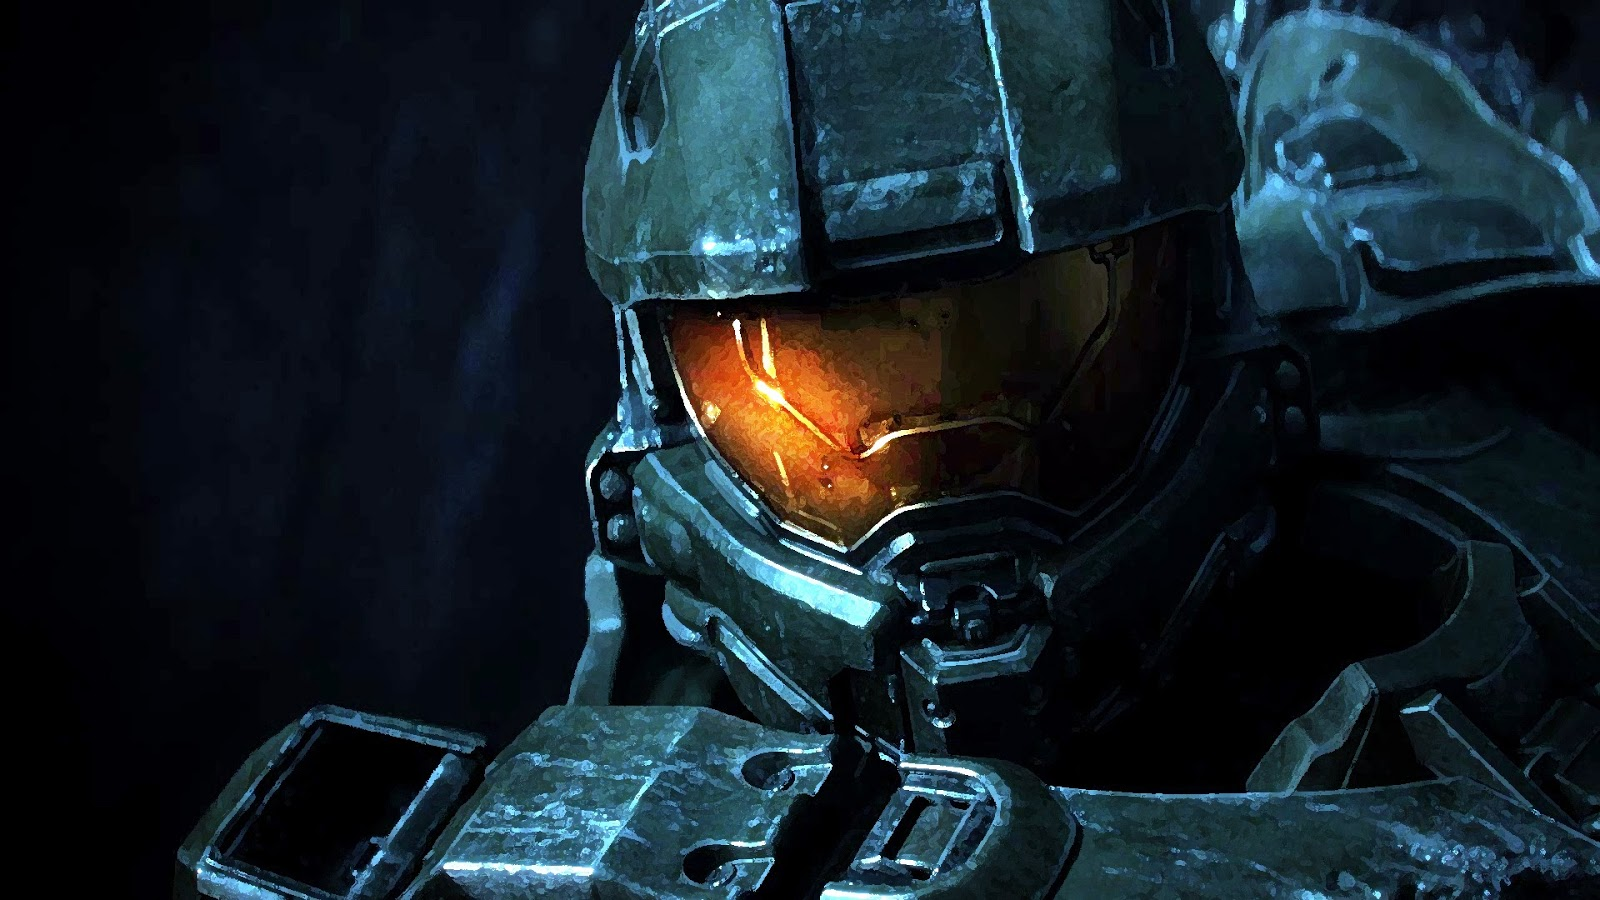 halo reach hd wallpaper 4 bing images